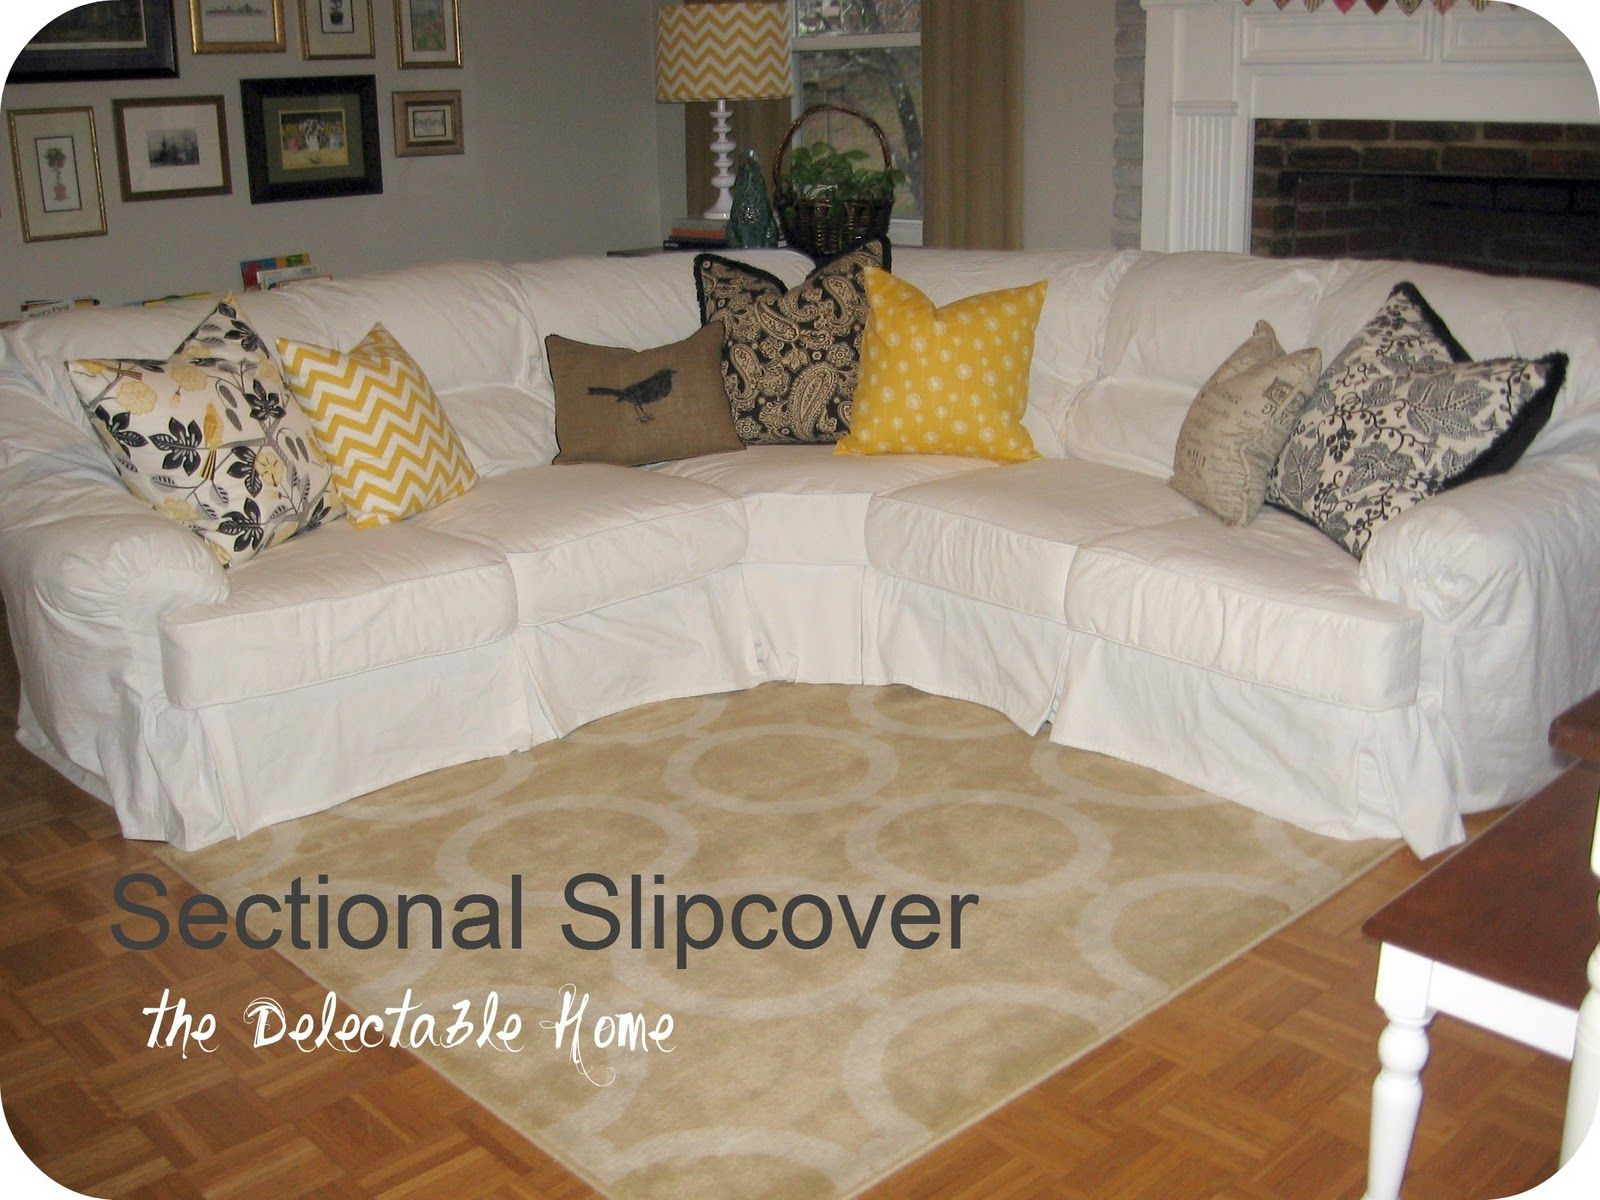 Sofa Beds Cheap Ikea Loveseat Uk The Delectable Home: Impossible Sectional Slipcover | Sew ...